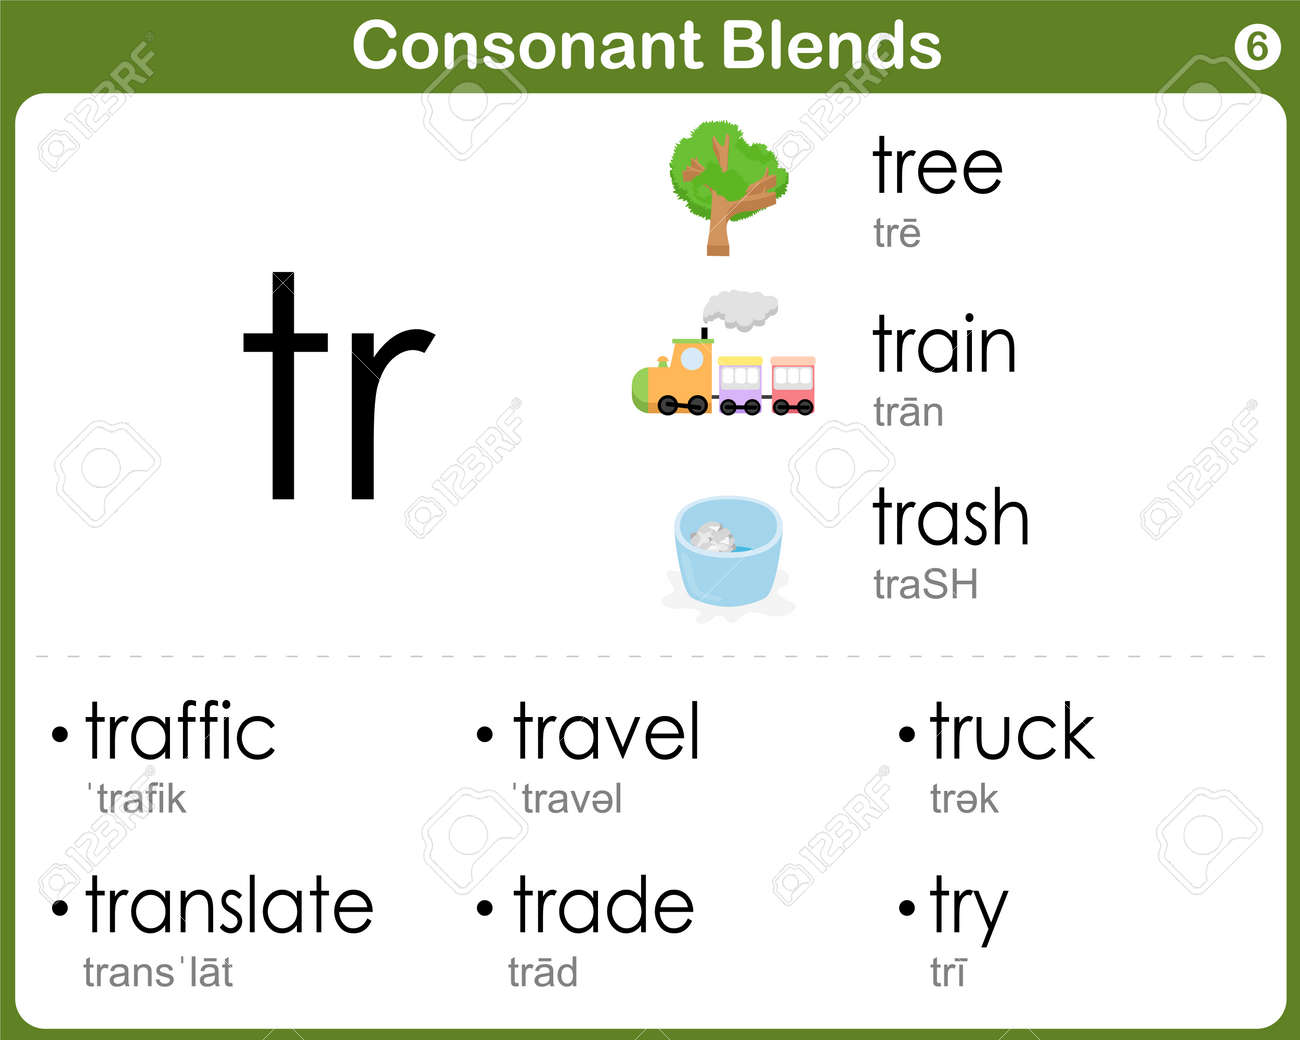 math worksheet : consonant blends worksheet for kids royalty free cliparts vectors  : Consonant Blends Worksheets For Kindergarten